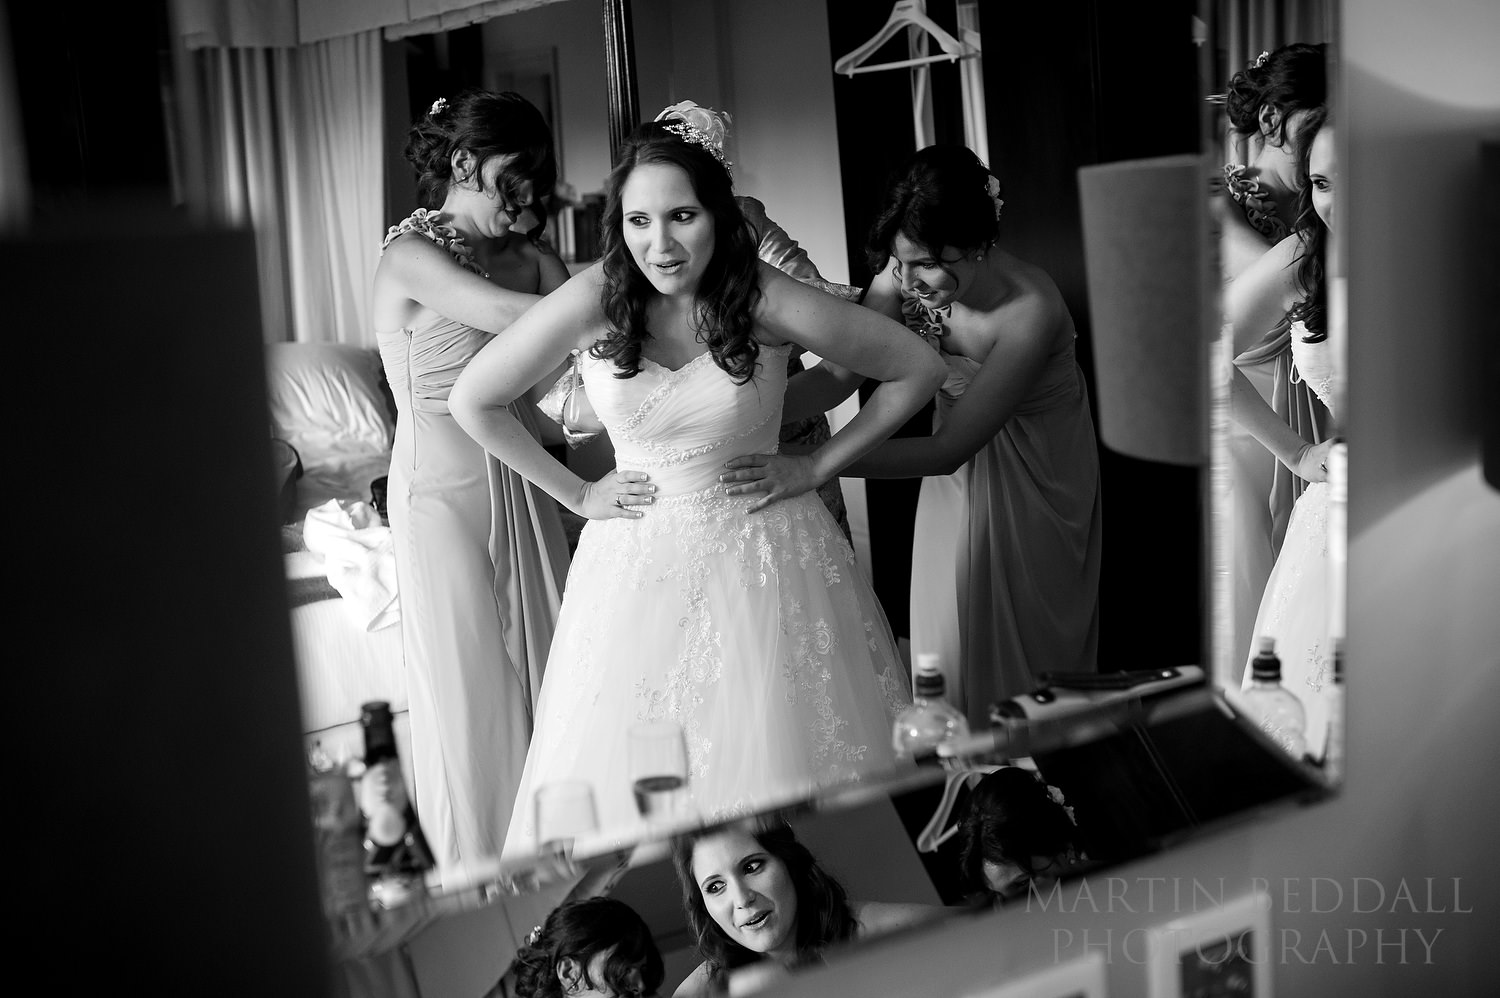 Bride getting into her wedding dress reflected in the mirror